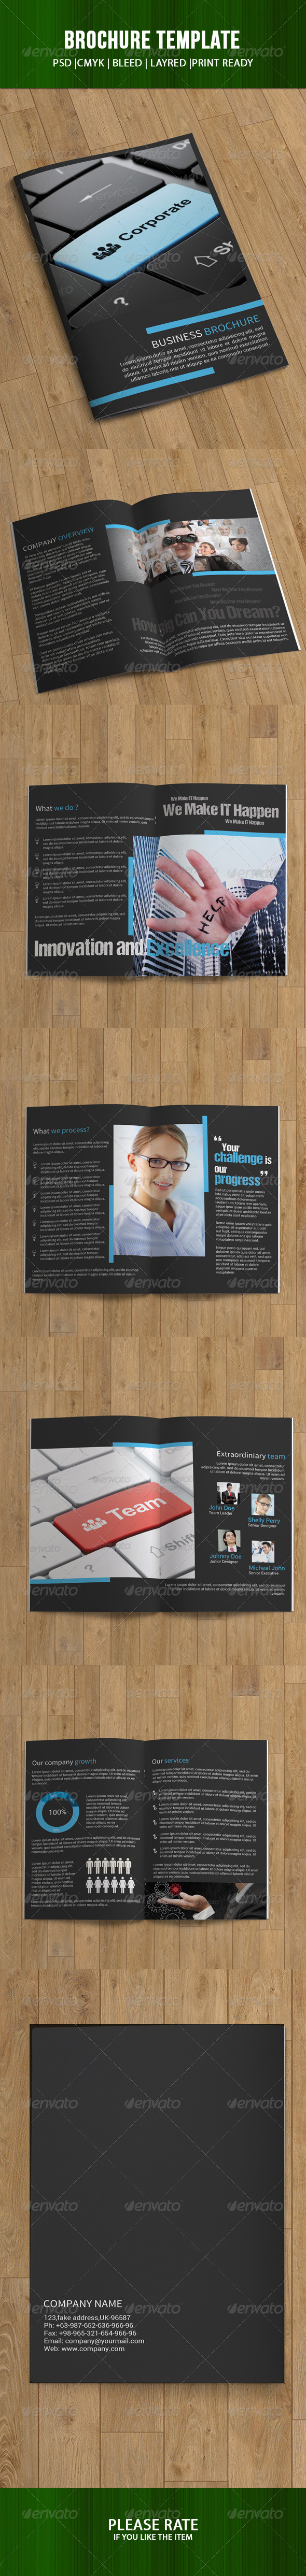 Business Brochure-12 Pages - Corporate Brochures